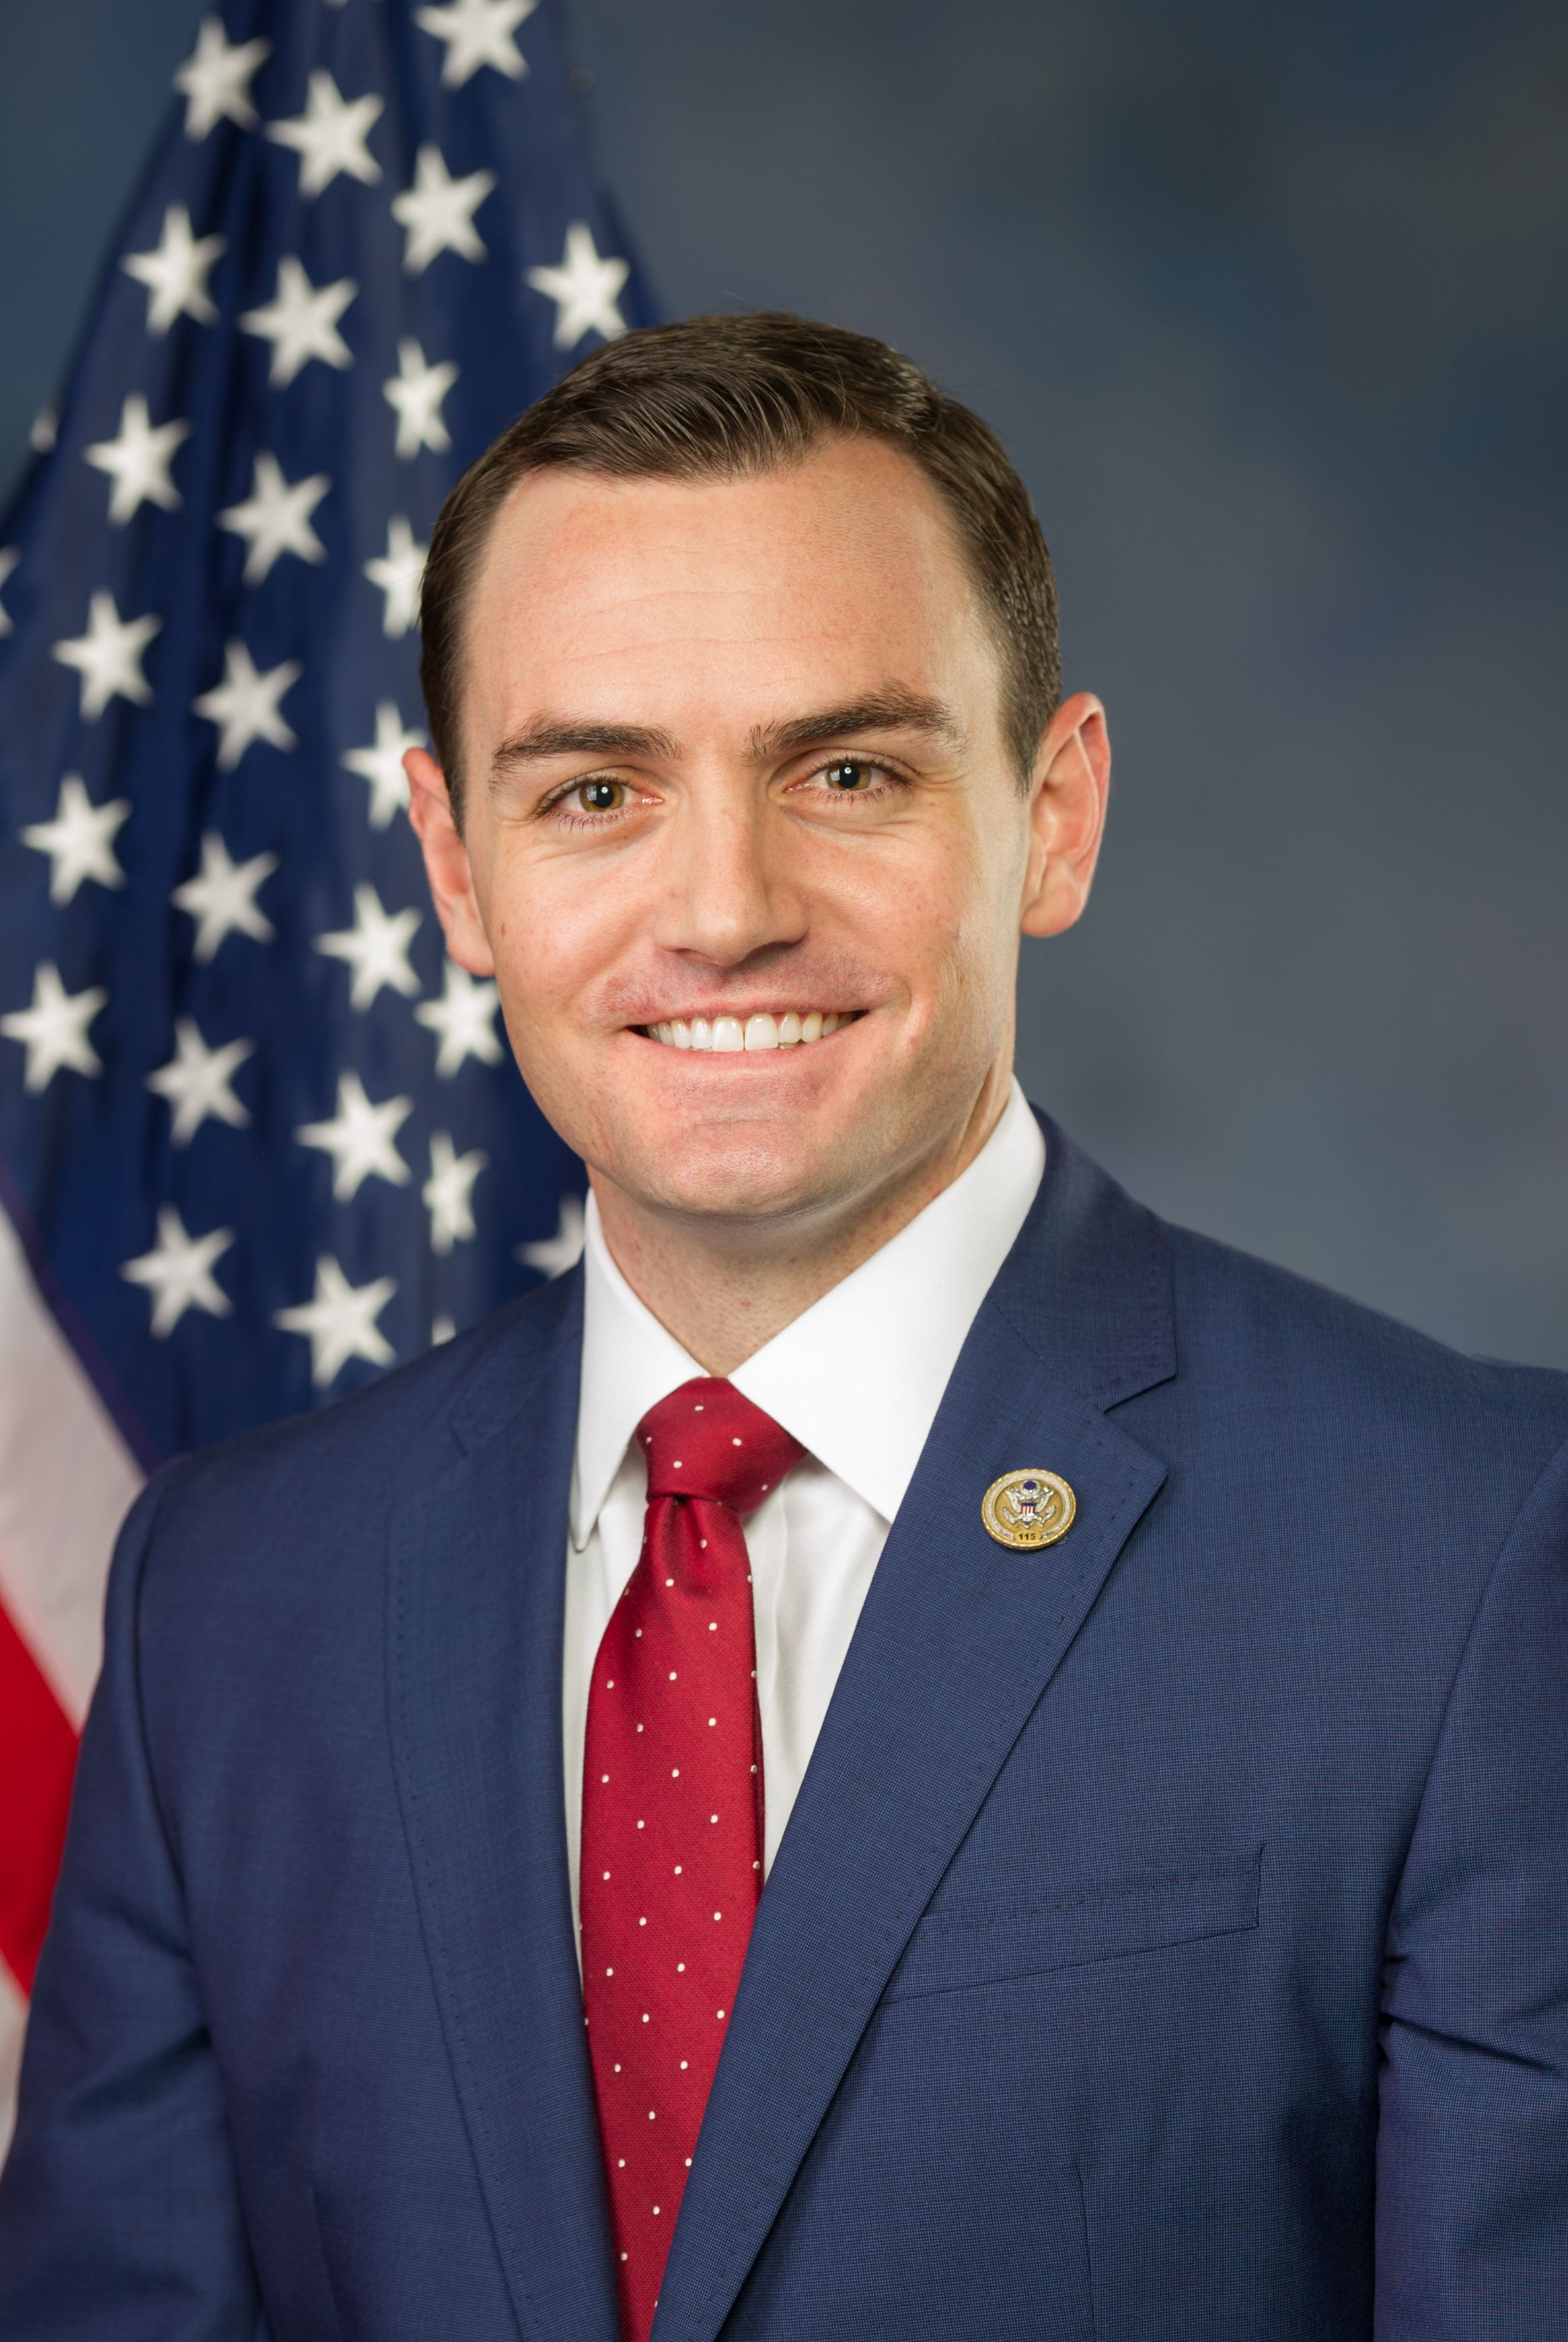 U.S. Rep. Mike Gallagher to discuss foreign policy at Marquette, Nov. 26